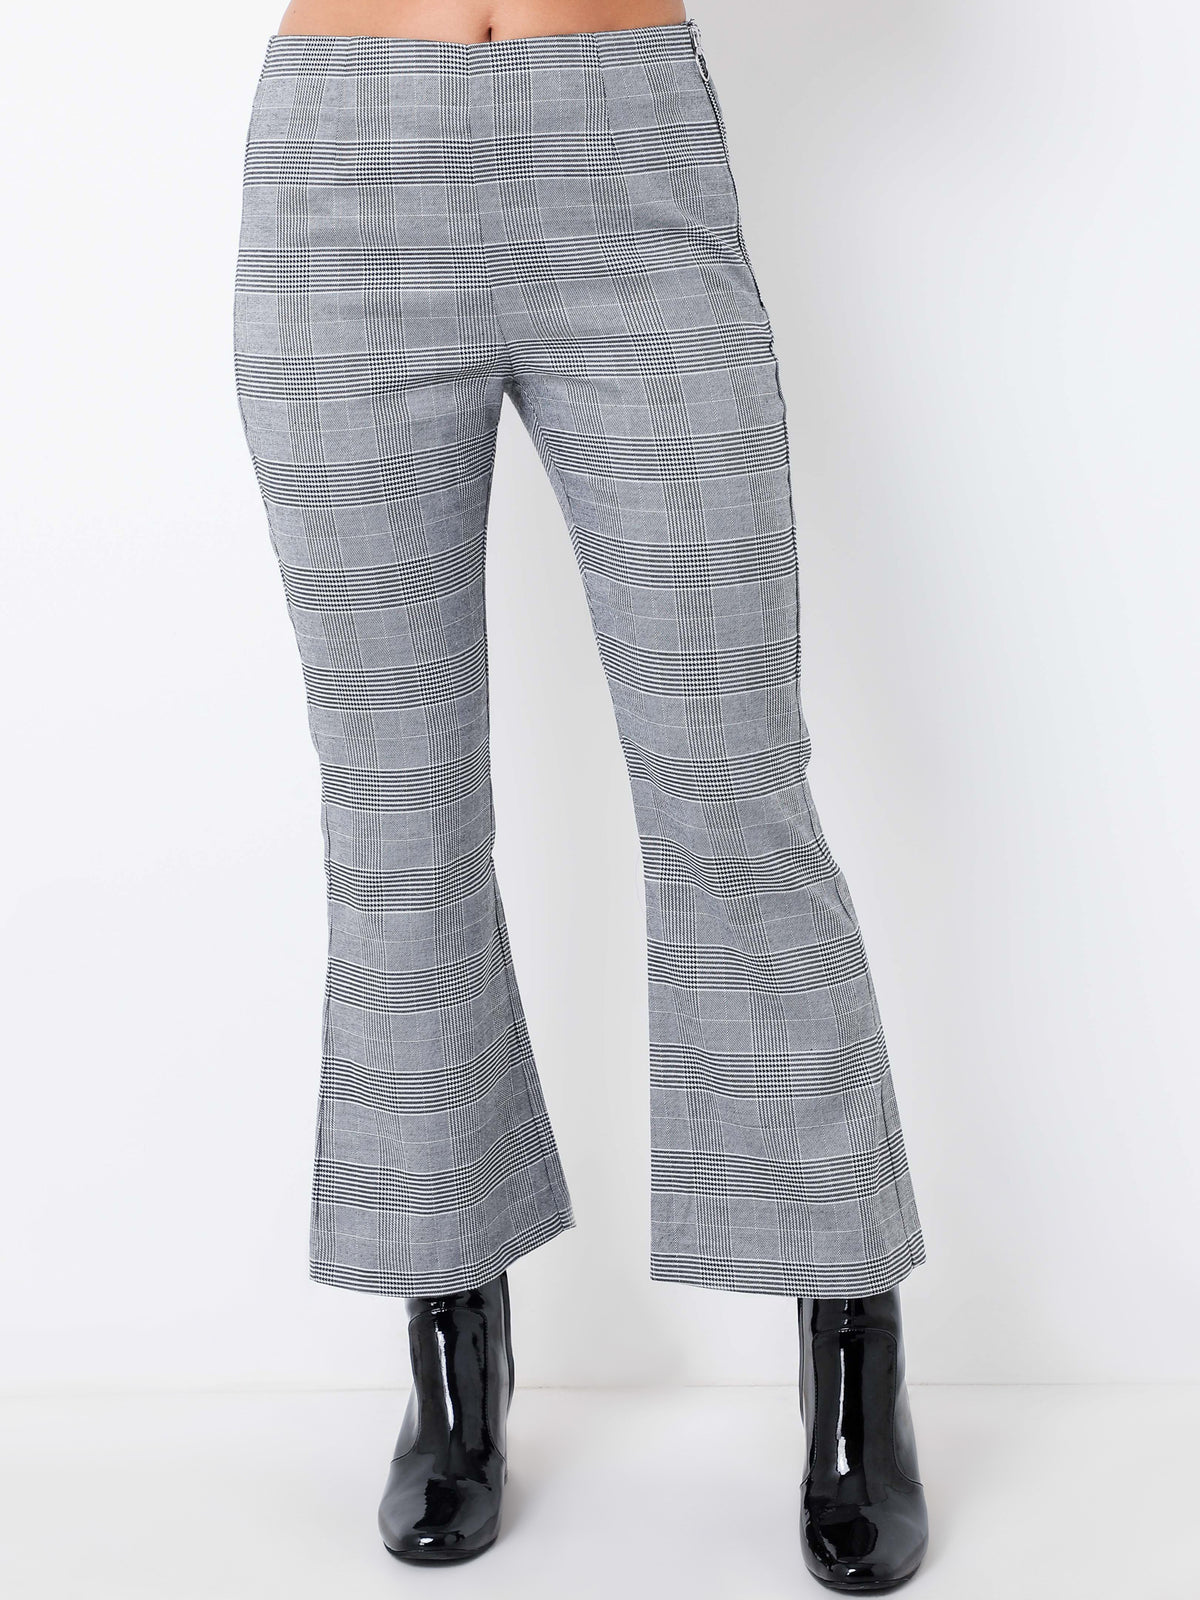 Millicent Crop Flare Pants in Black & White Check